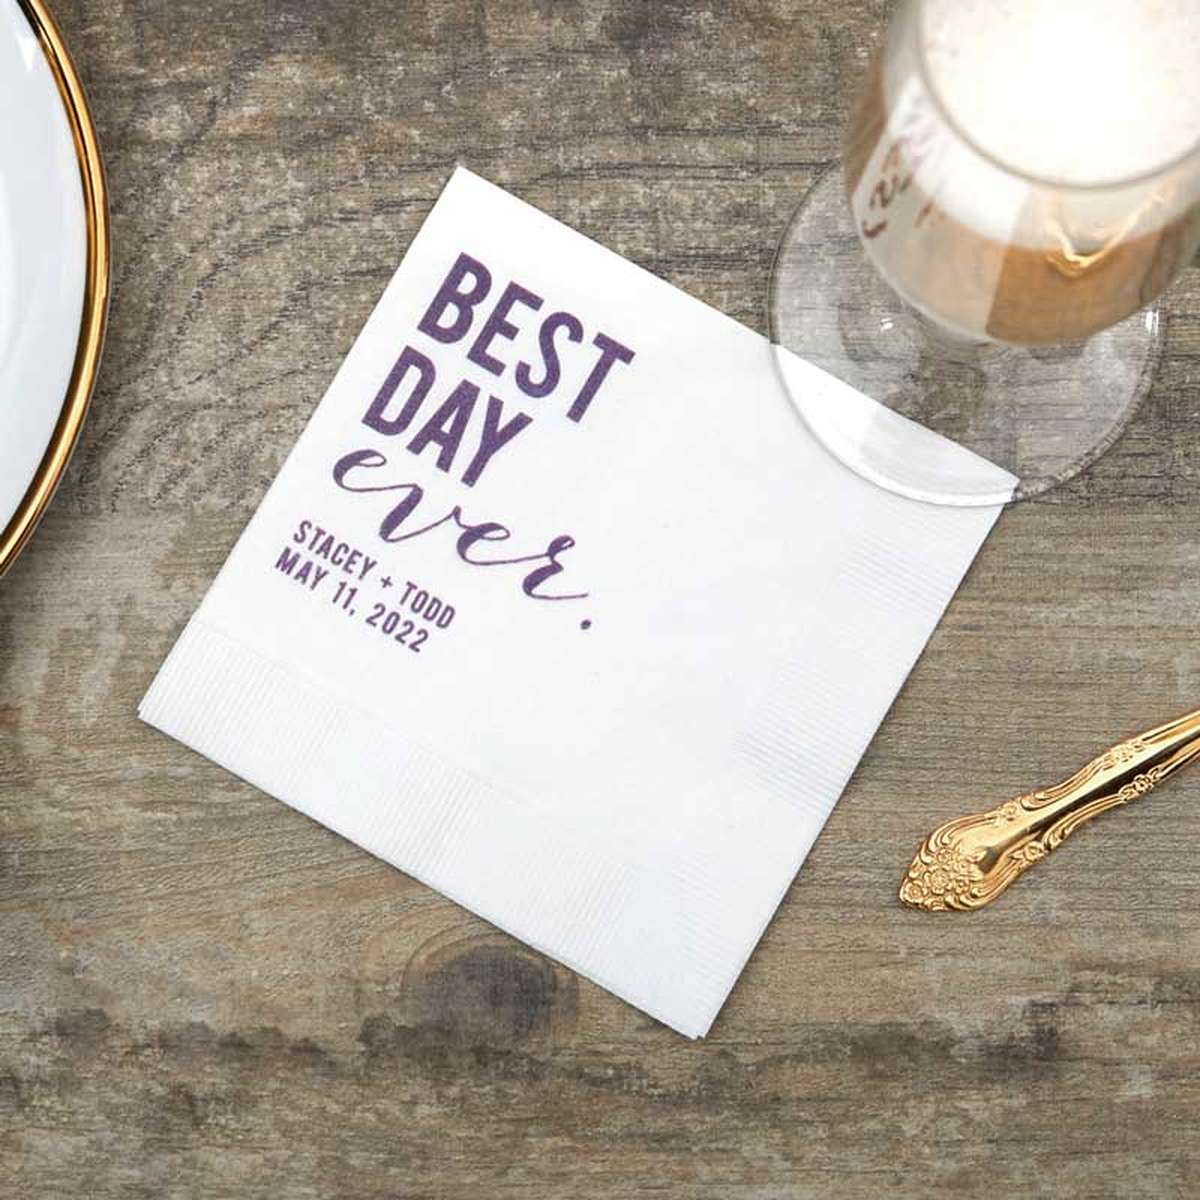 best day ever ink printed napkin